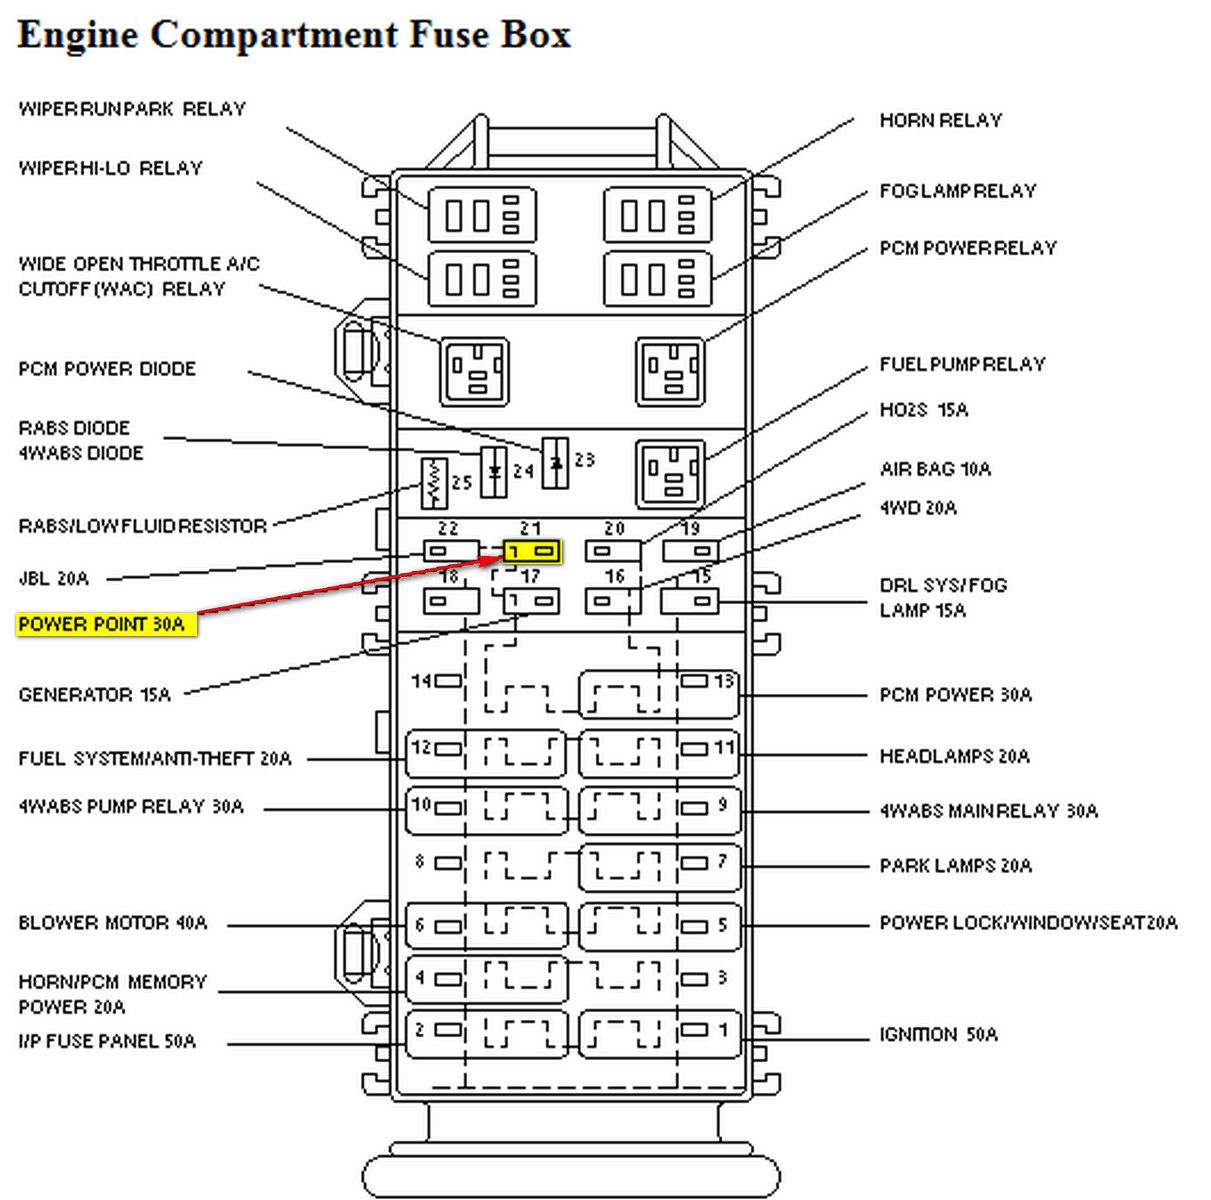 small resolution of wrg 4838 2002 ford f 150 fx4 fuse panel diagram1997 ford ranger fuse box diagram